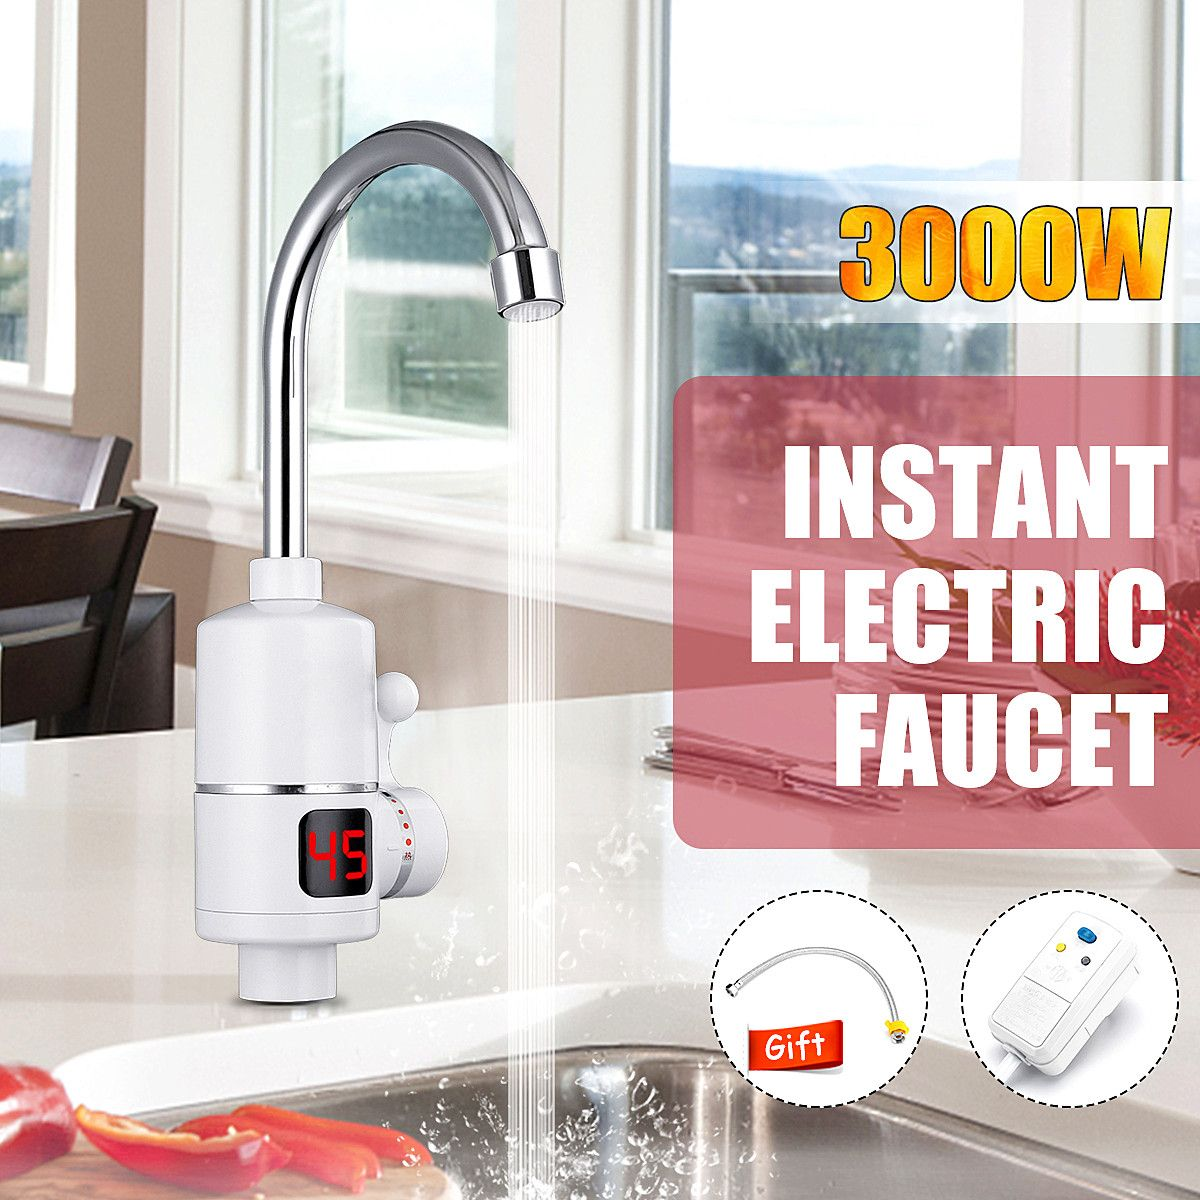 Instant Hot Water Heater Tap Fast Instantaneous Thermostat   3KW Electrical Faucet Temperature Display With Leakage ProtectionsInstant Hot Water Heater Tap Fast Instantaneous Thermostat   3KW Electrical Faucet Temperature Display With Leakage Protections